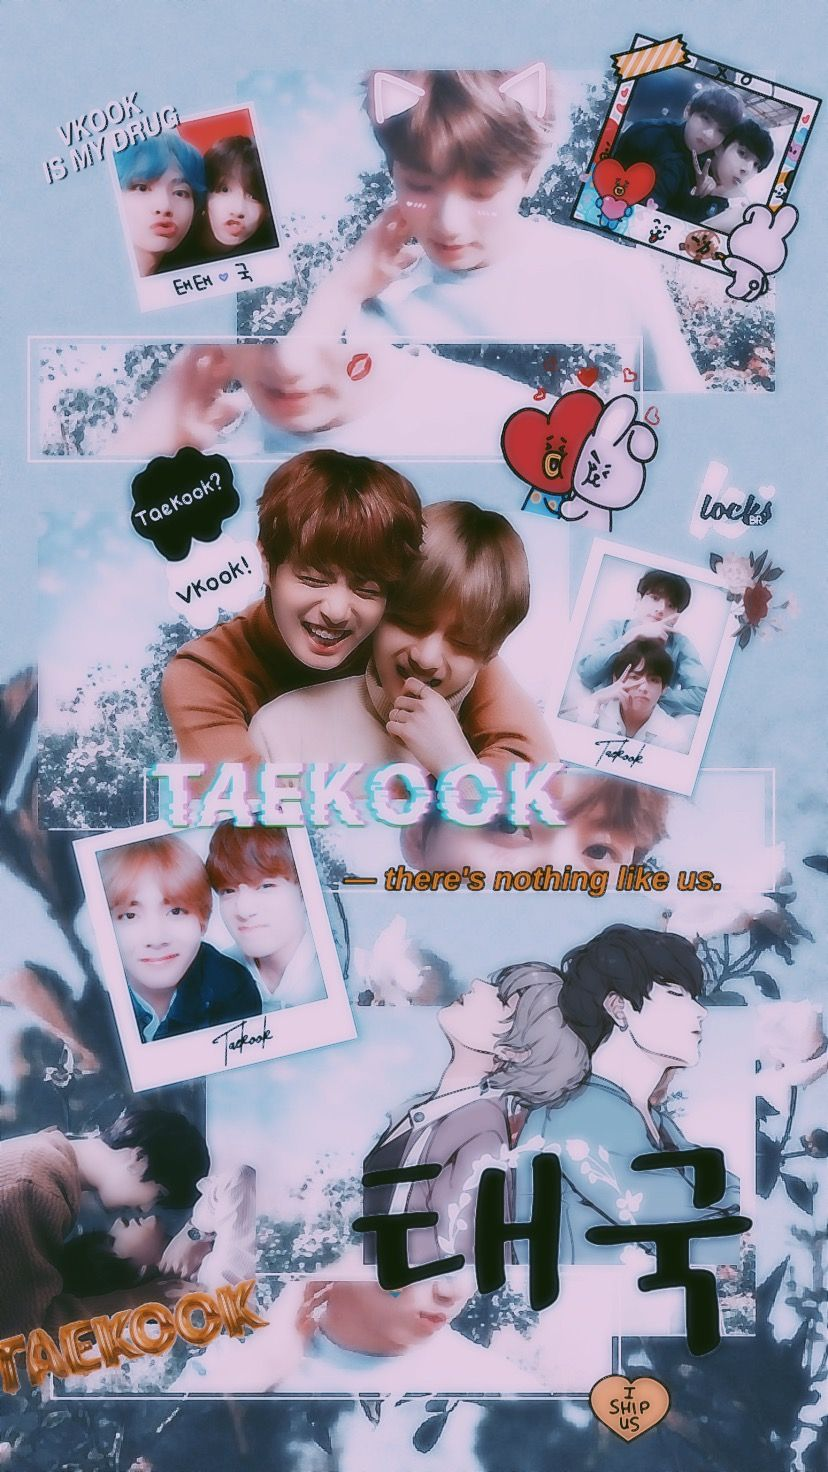 bts taekook vkook wallpaper freetoedit